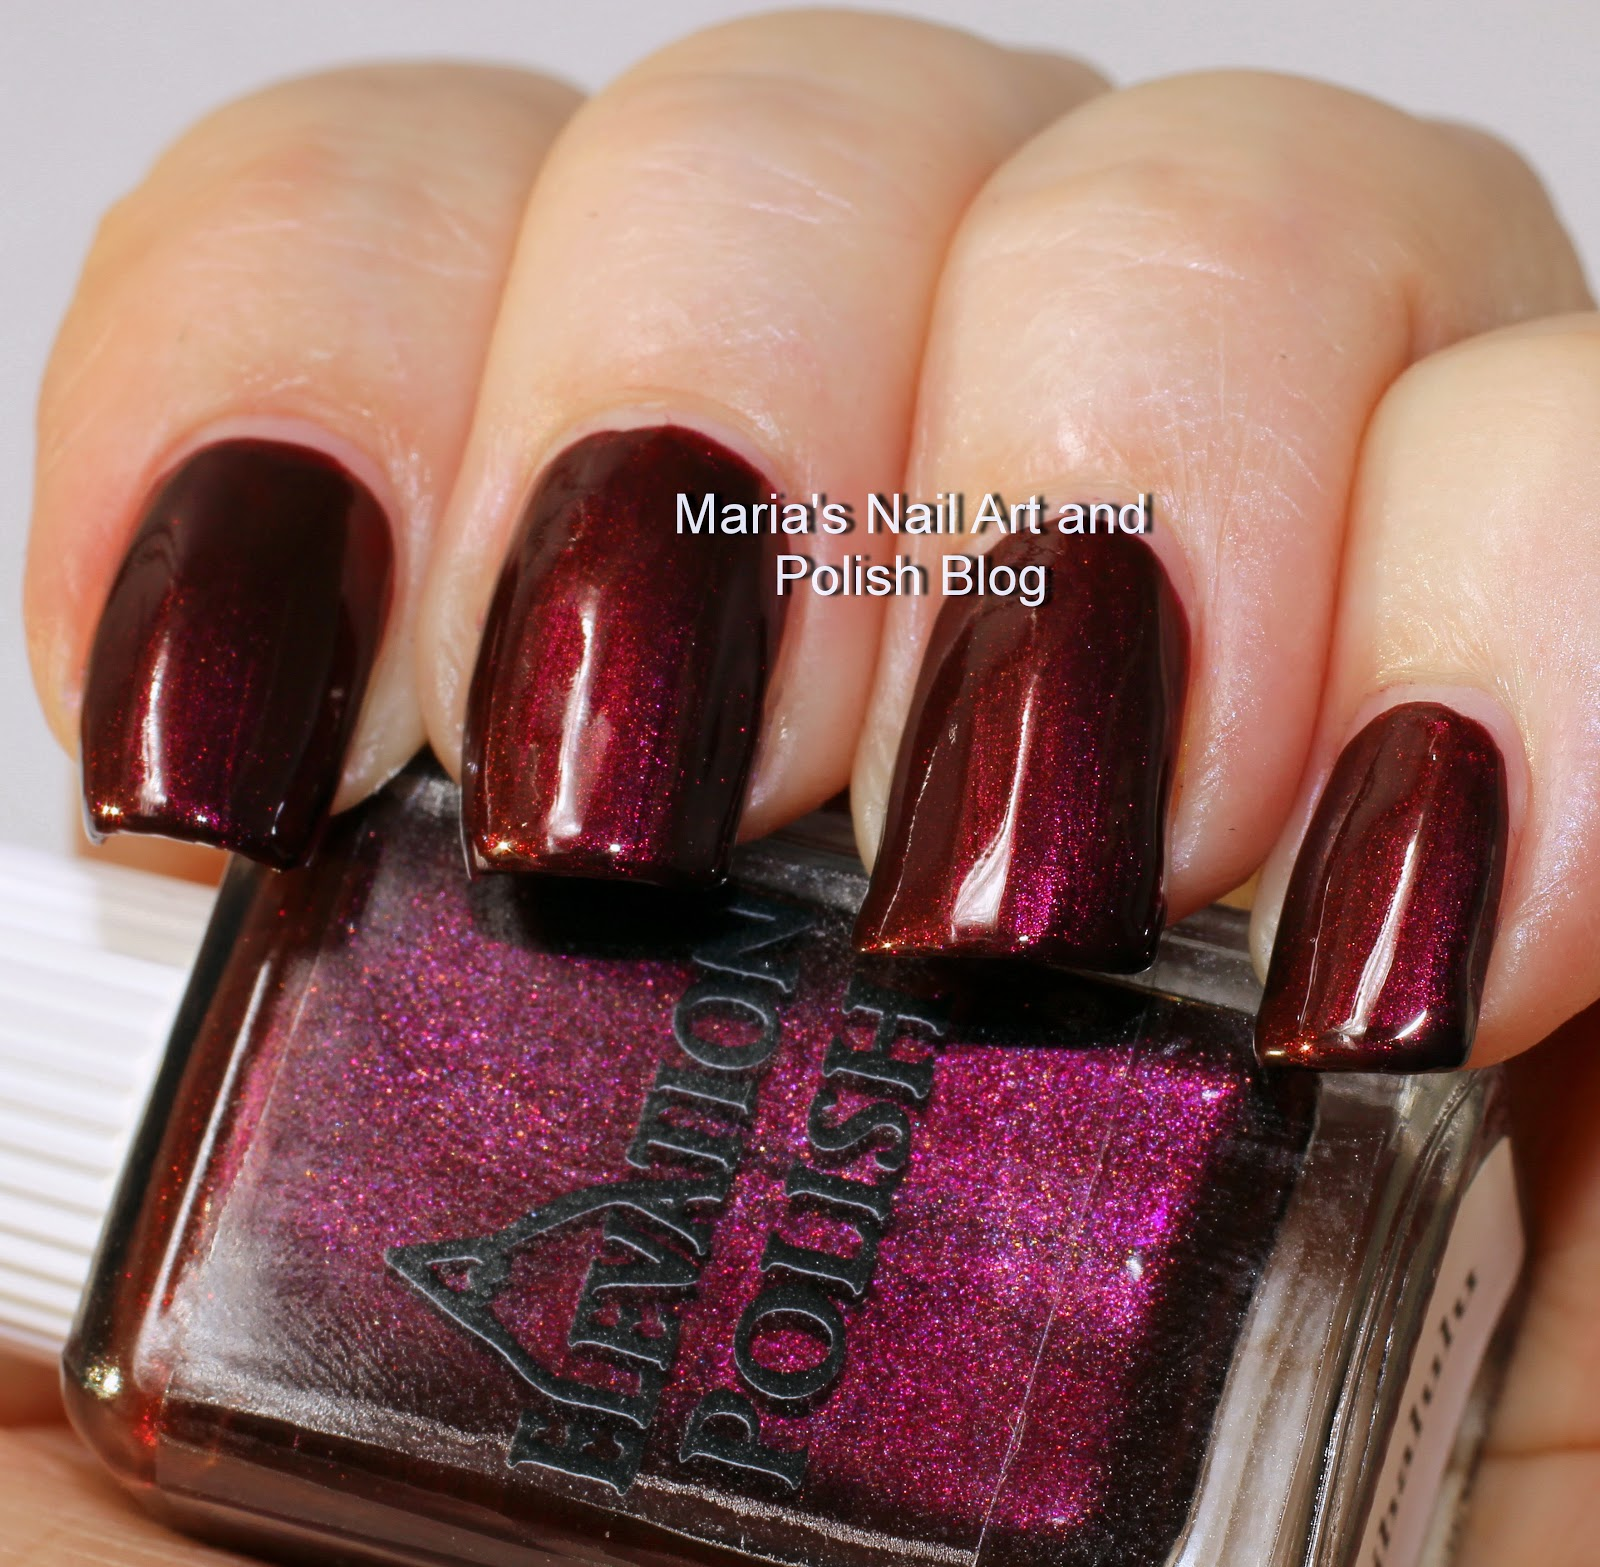 Marias Nail Art And Polish Blog Flushed With Stripes And: Marias Nail Art And Polish Blog: Elevation Polish Purple